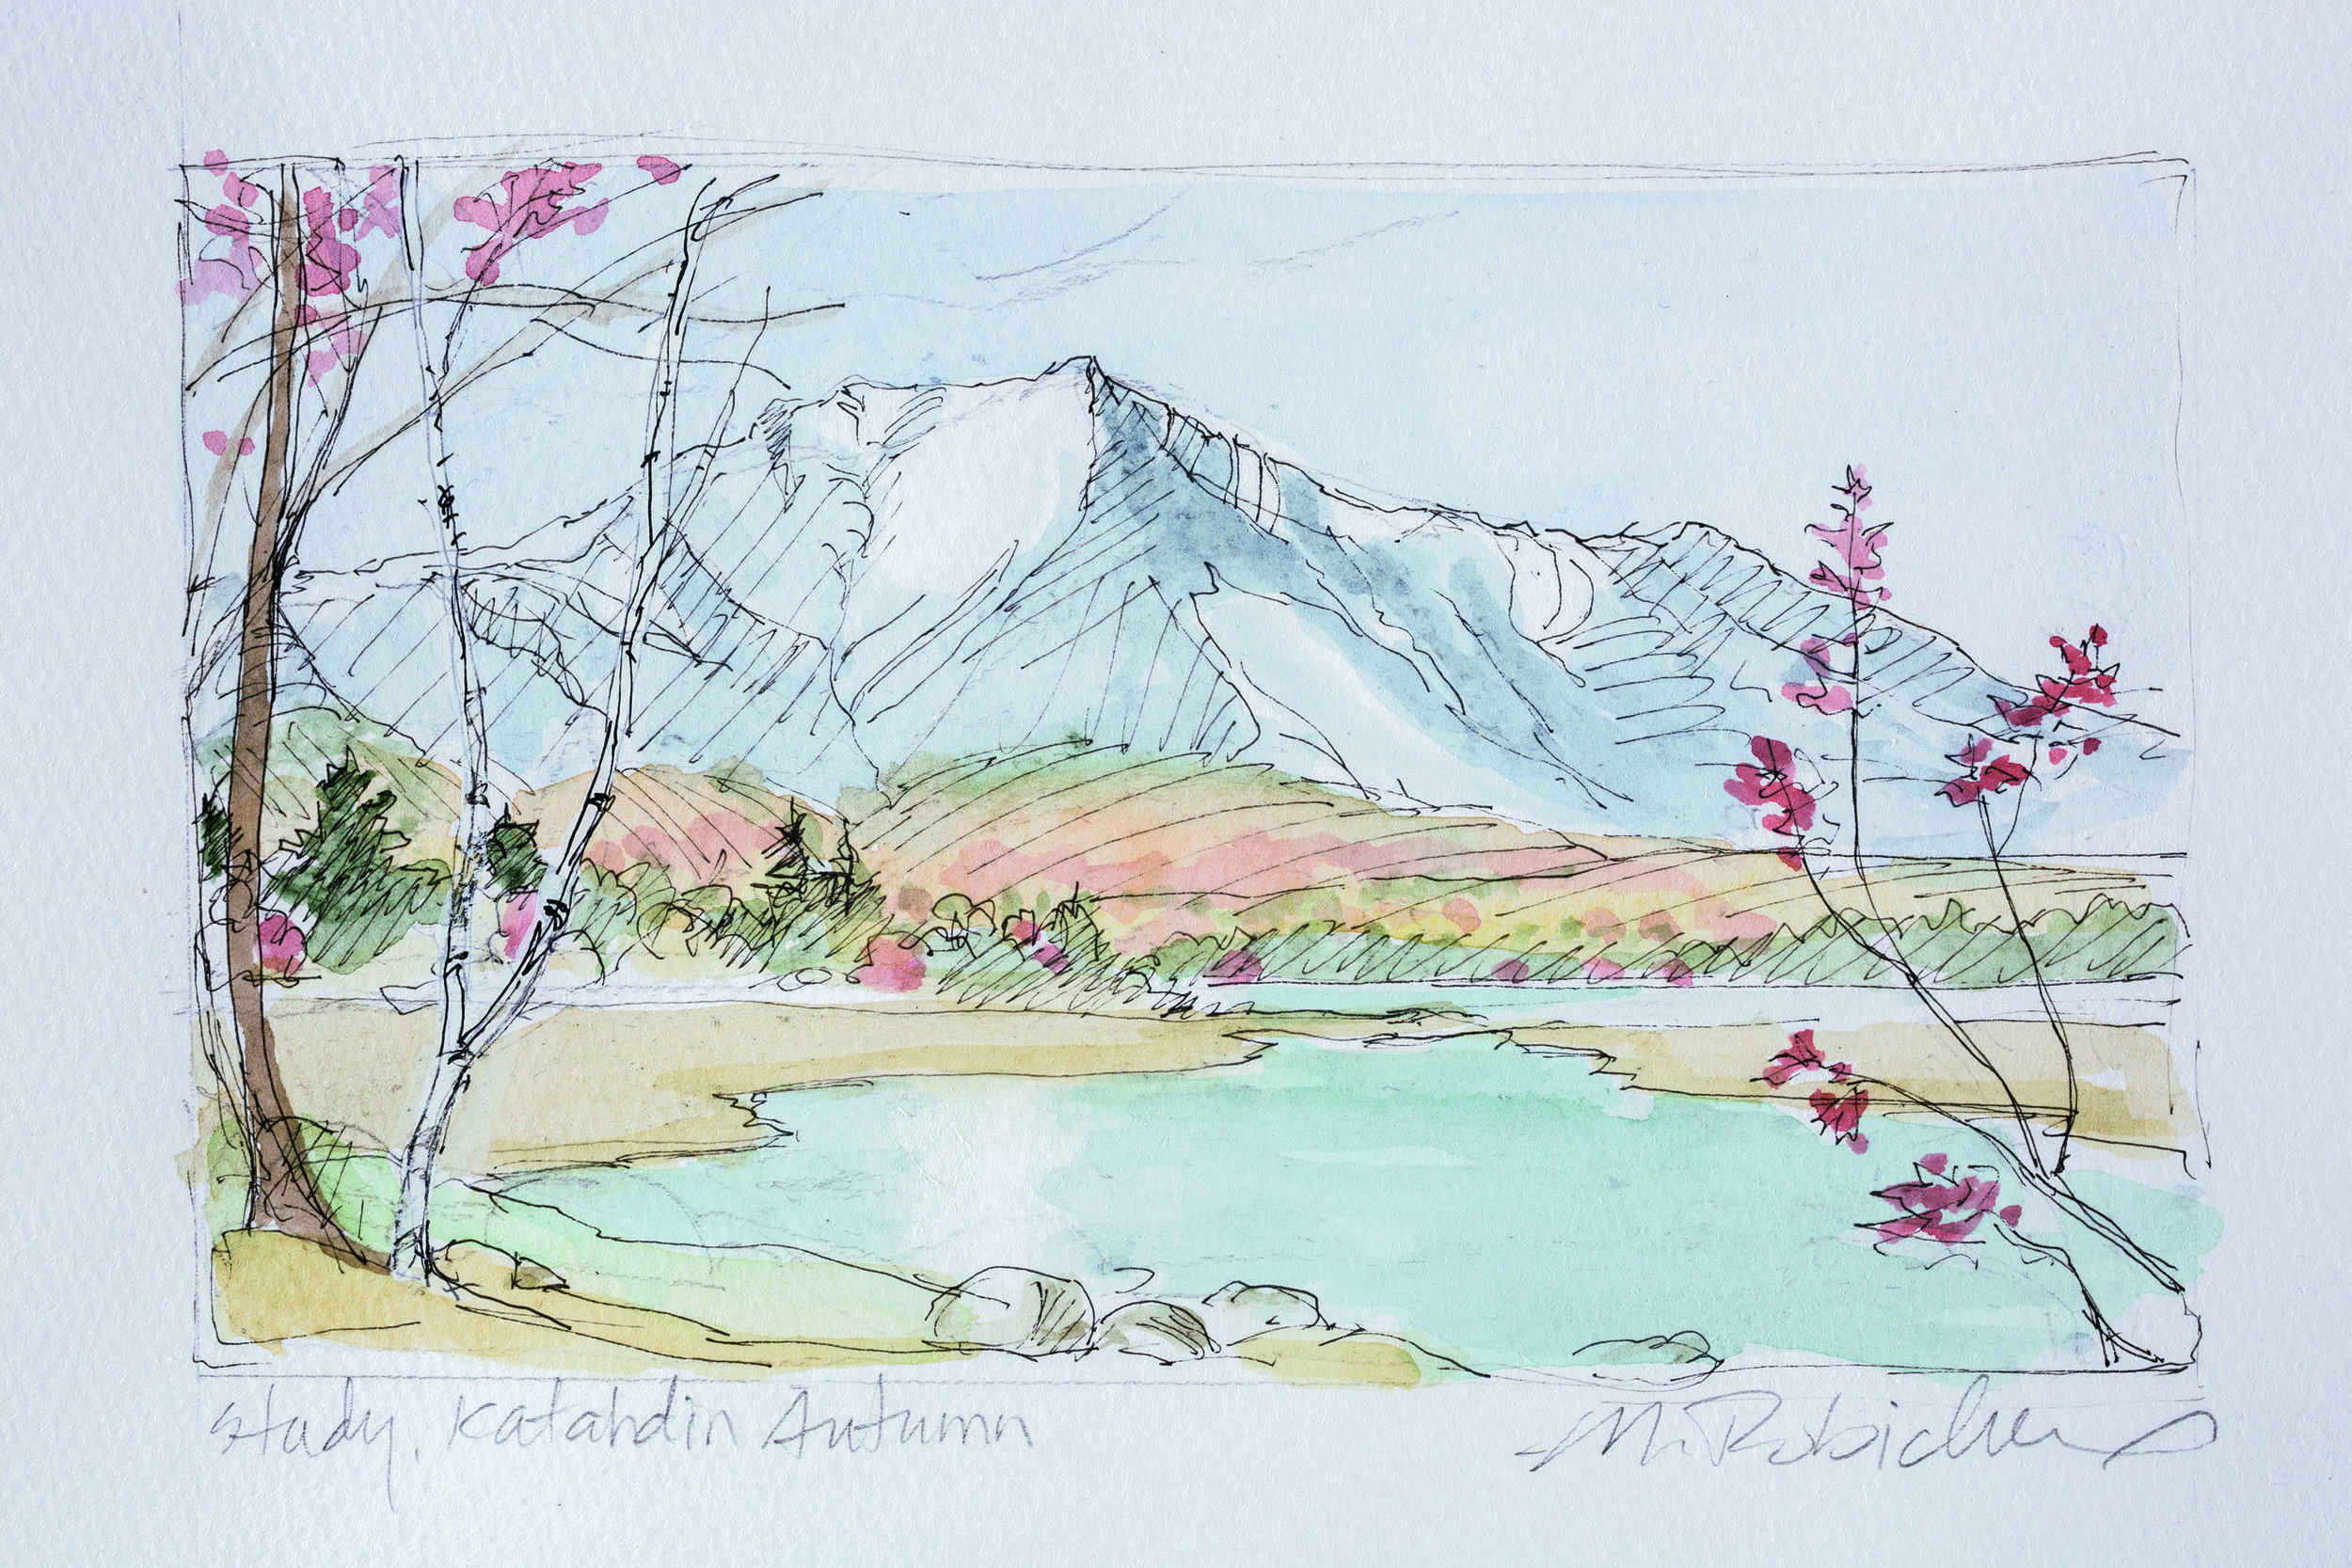 "Marguerite Robichaux  Study for Katahdin Autumn  Watercolor, graphite, and ink on paper 4 x 6.5"" MR306"